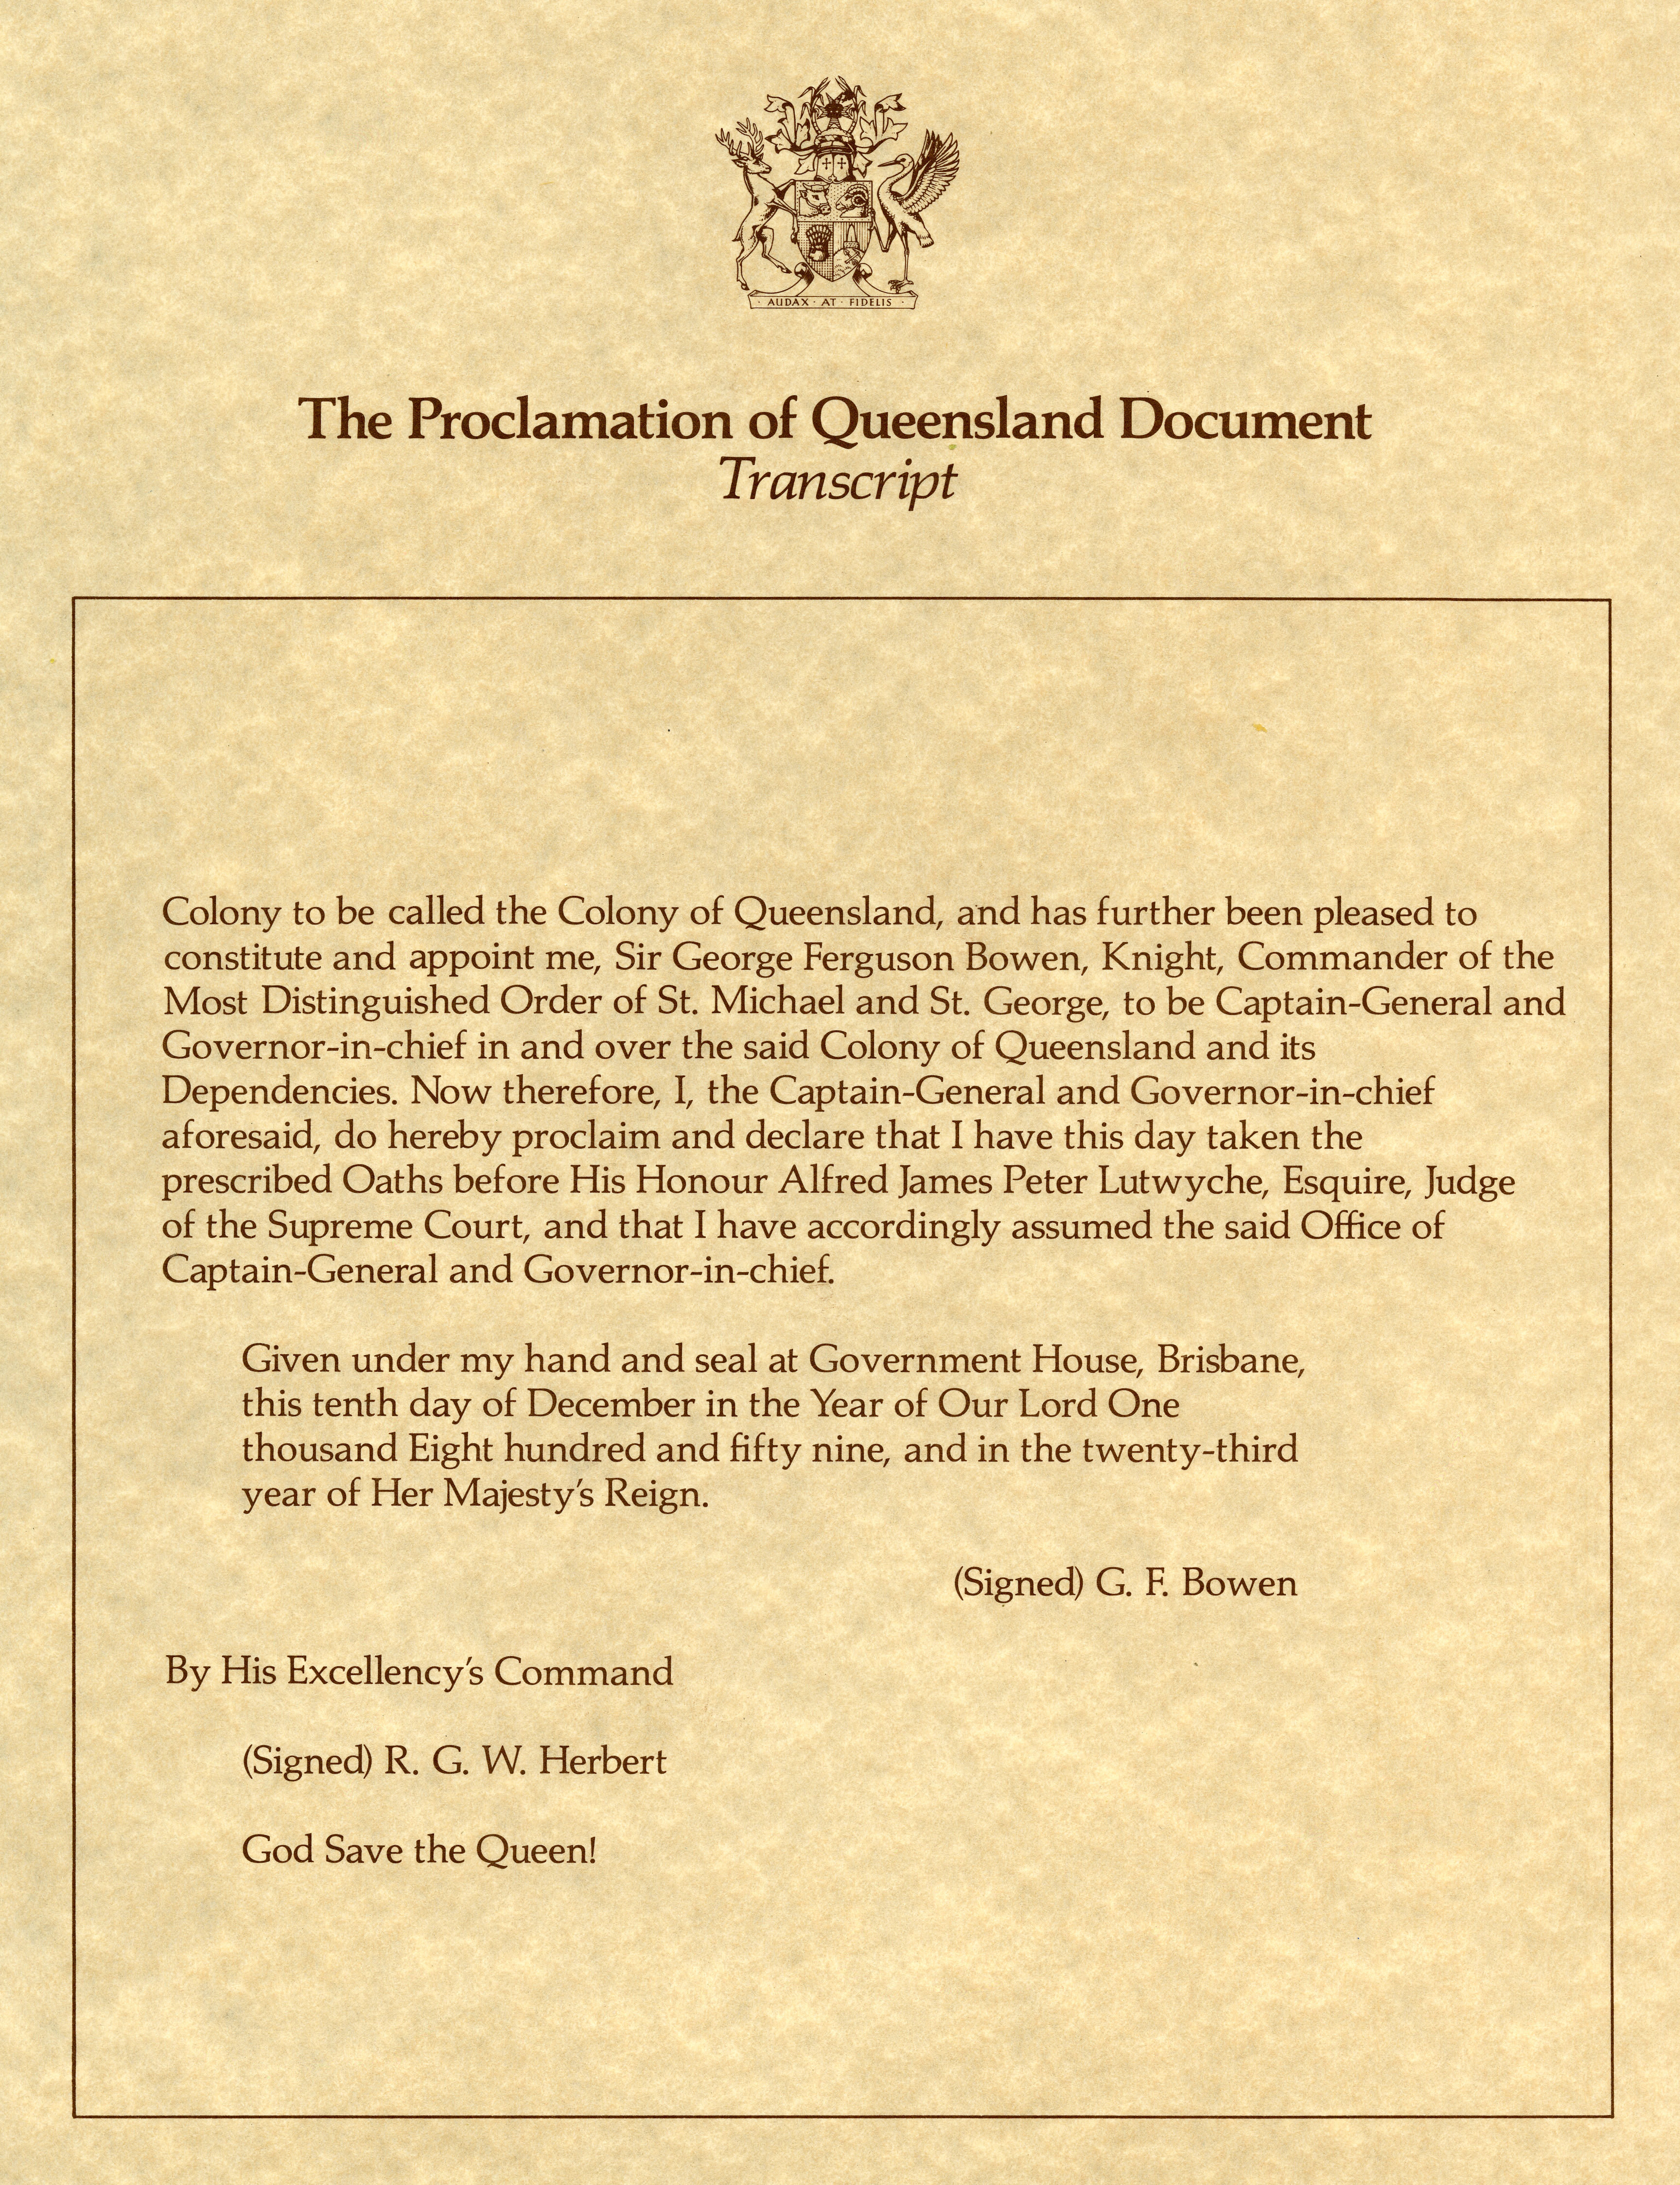 Transcript of the Proclamation of Queensland document page 2